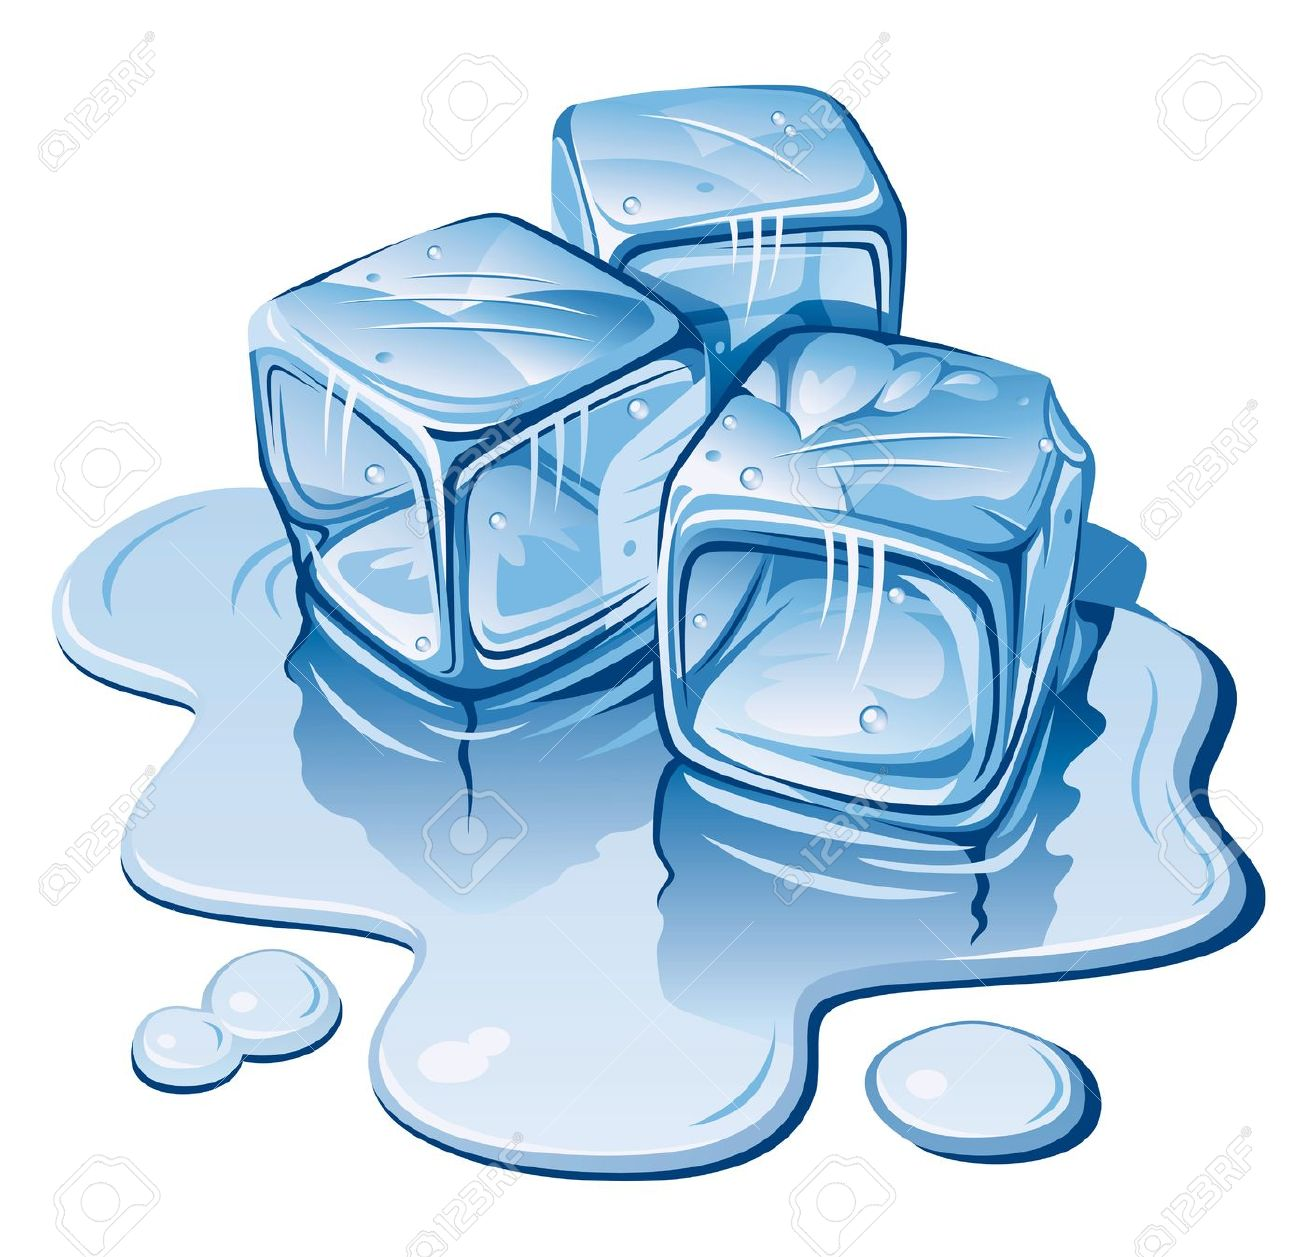 Ice clipart #9, Download drawings